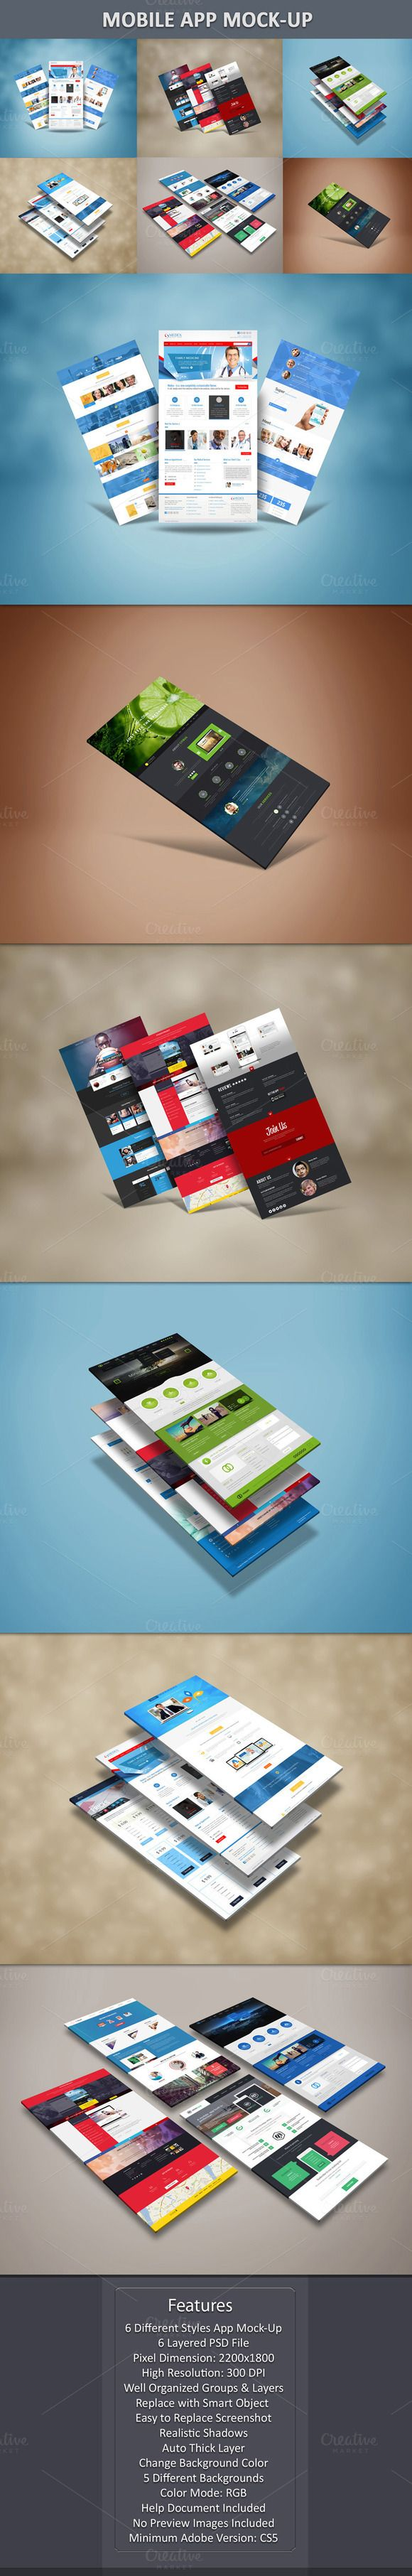 Mobile App Mock-up by Graphicsworld125 on Creative Market